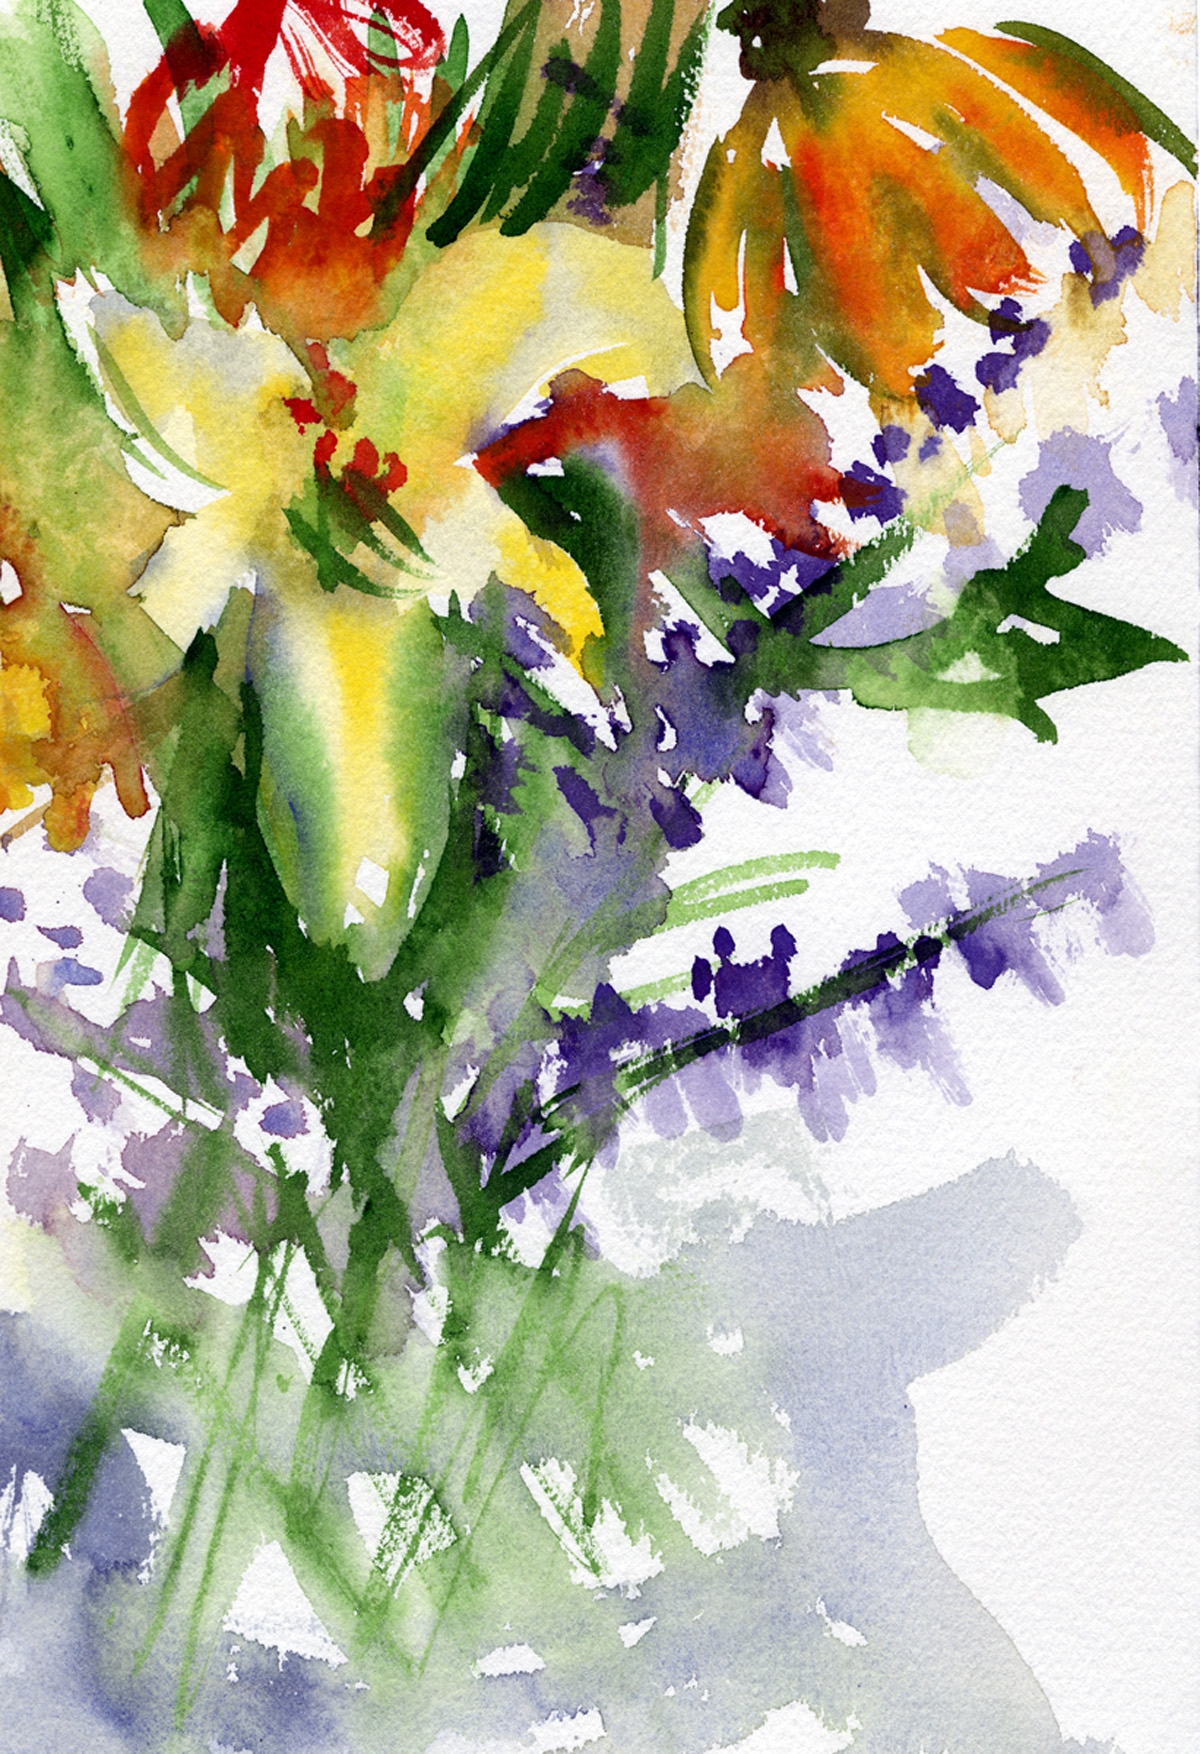 DAY LILIES AND MORE